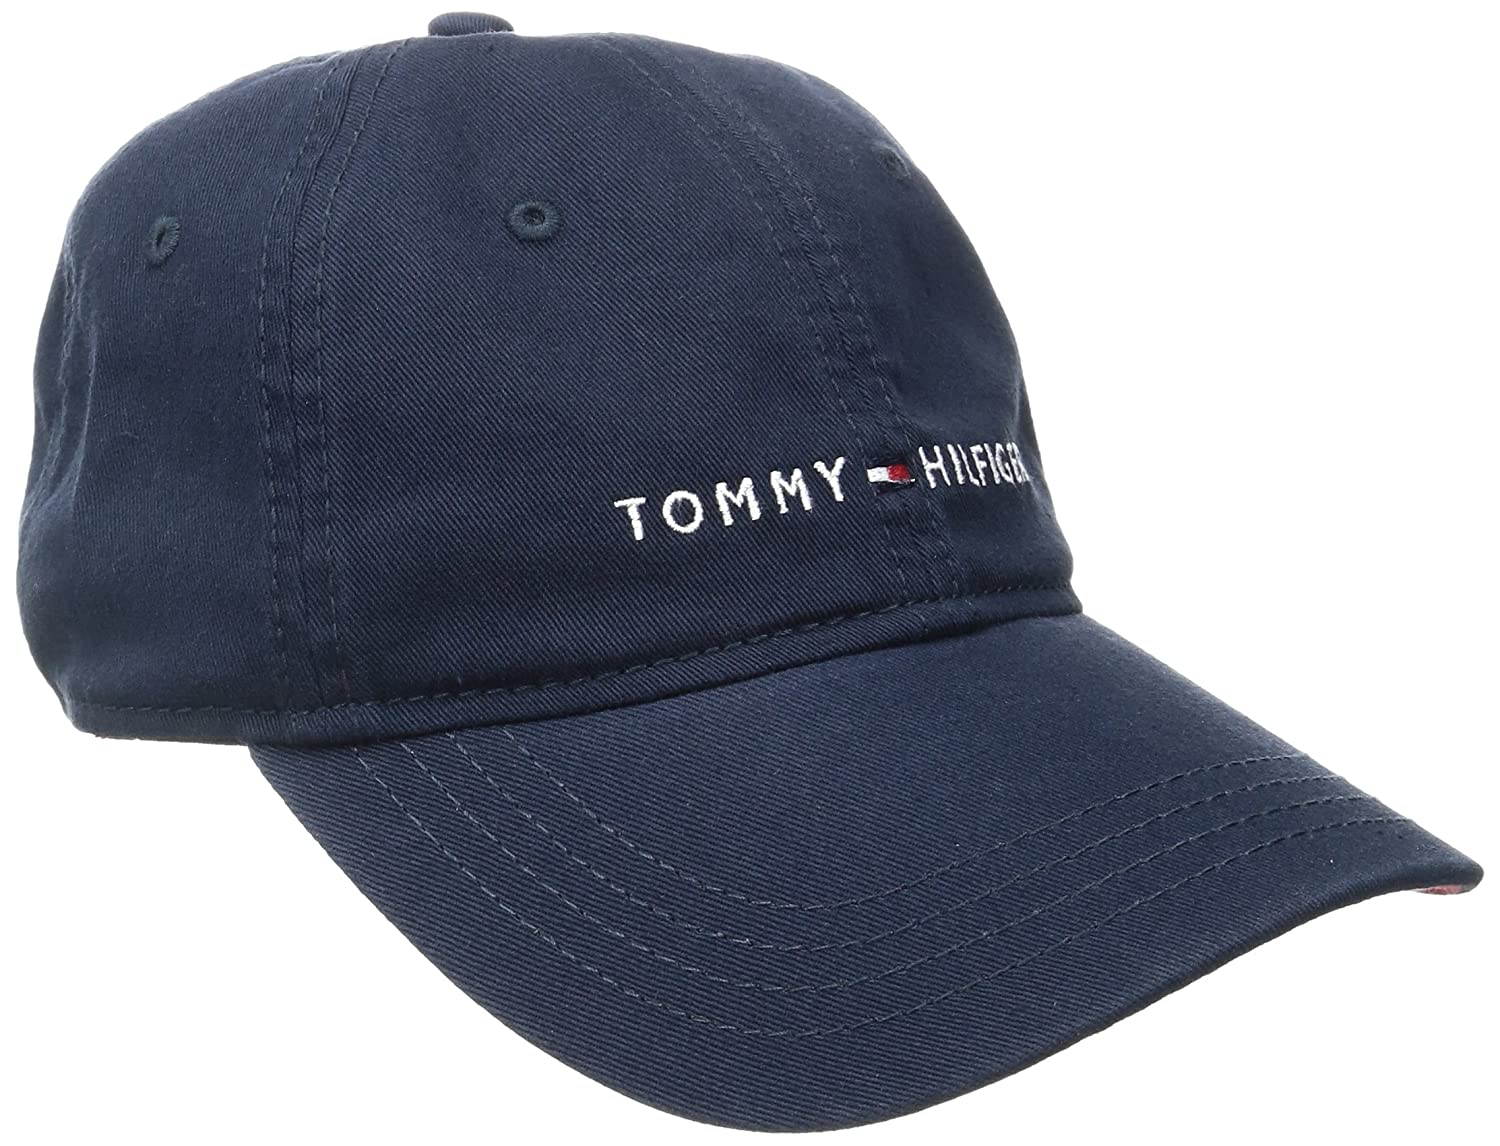 premium selection 4eabc 9f184 Tommy Hilfiger dad hat featuring our classic Hilfiger logo. Logo flag  embroidery. Adjustable metal buckle closure. Six-panel design for  durability and ...